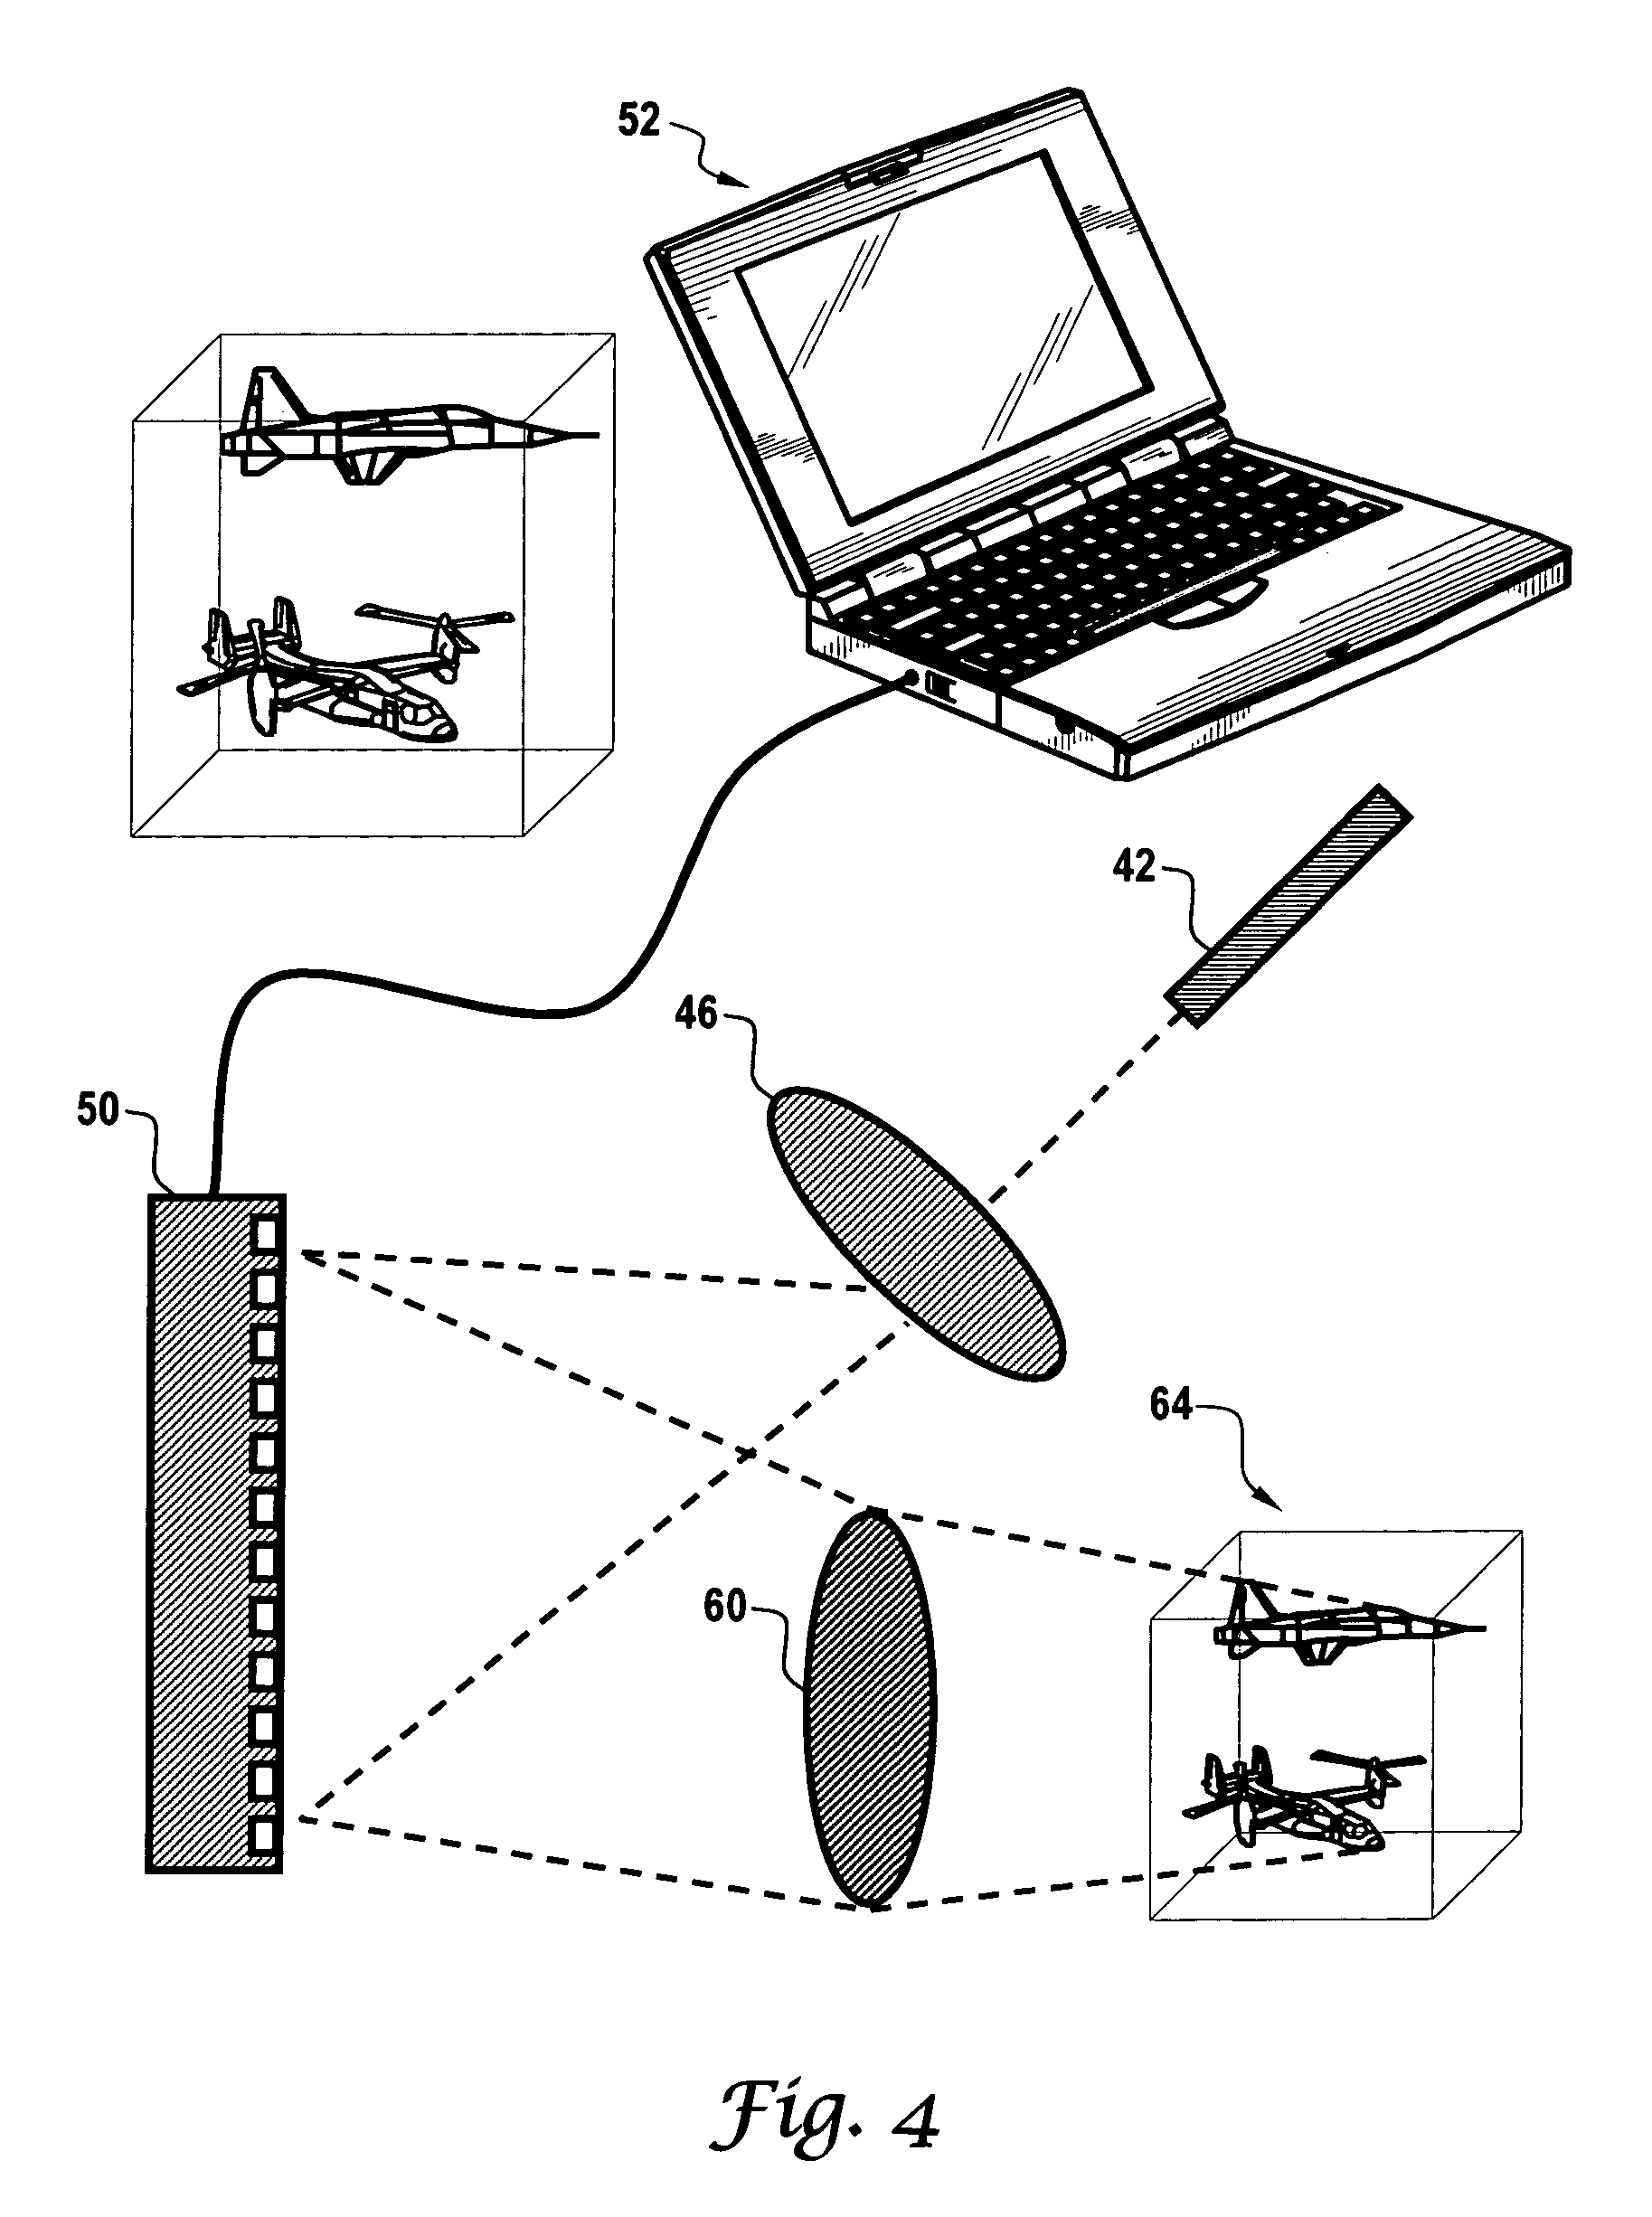 Which Device That Emits A Focused Beam Of Light